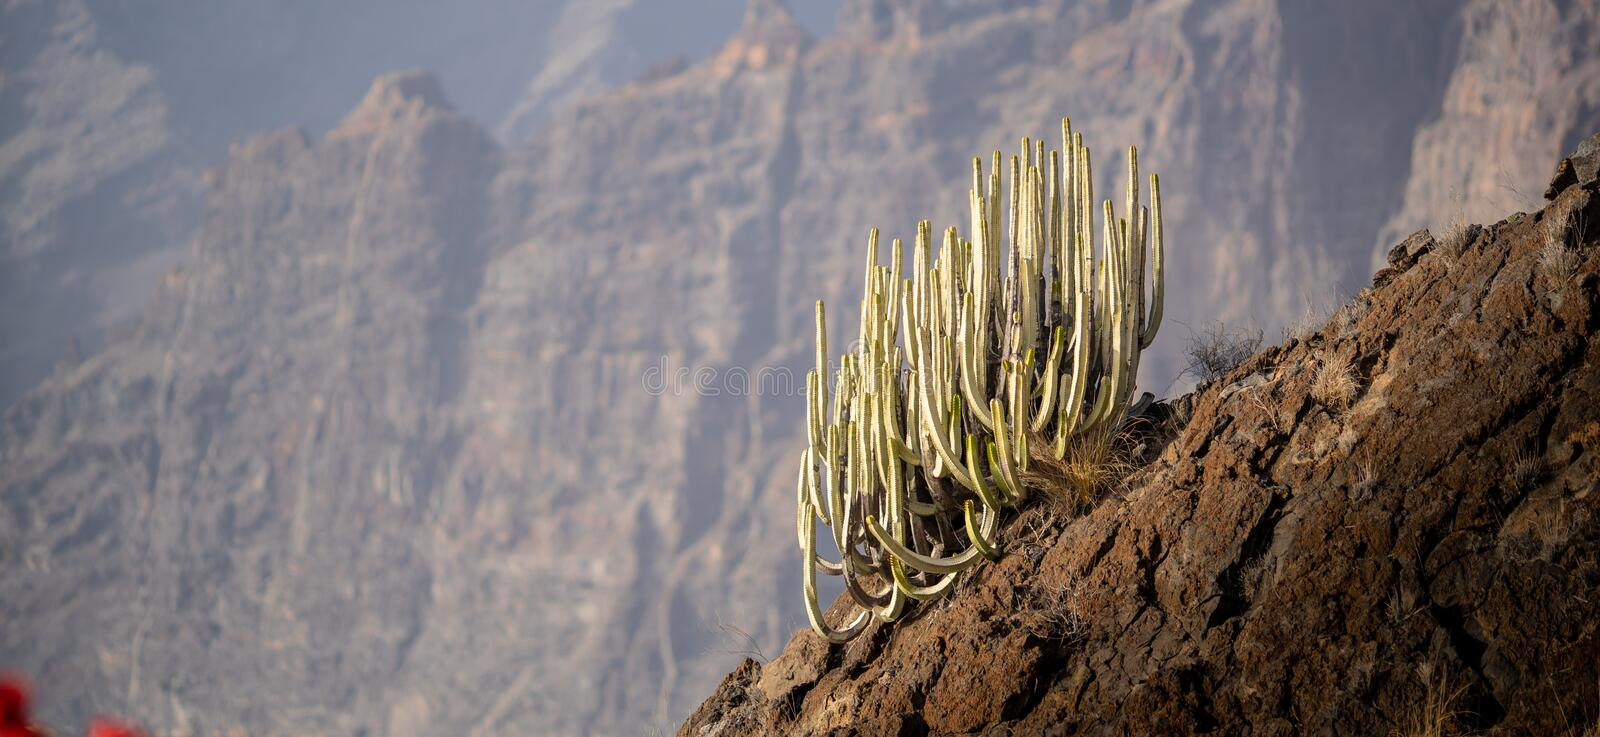 Cactus on a hill with bokeh on the background to isolate the cactus and showcase the high altitude and scale stock photography